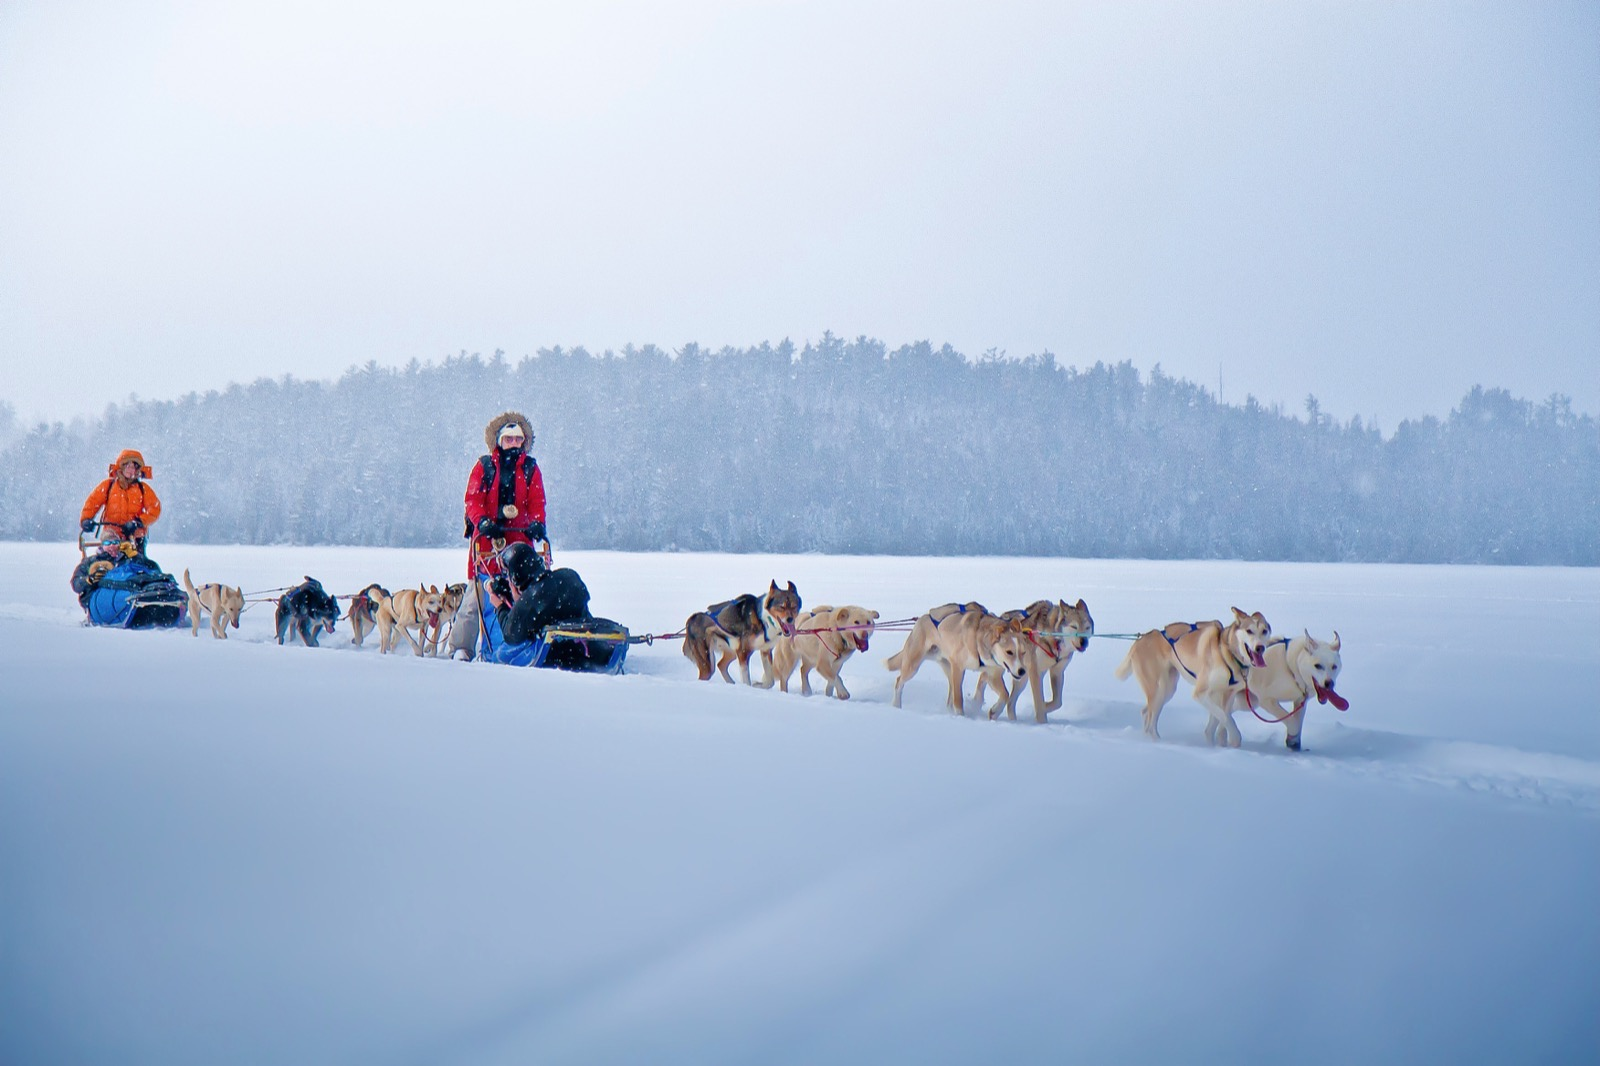 A light snow falls as two teams of sled dogs pull their sleds across a snow-covered lake.